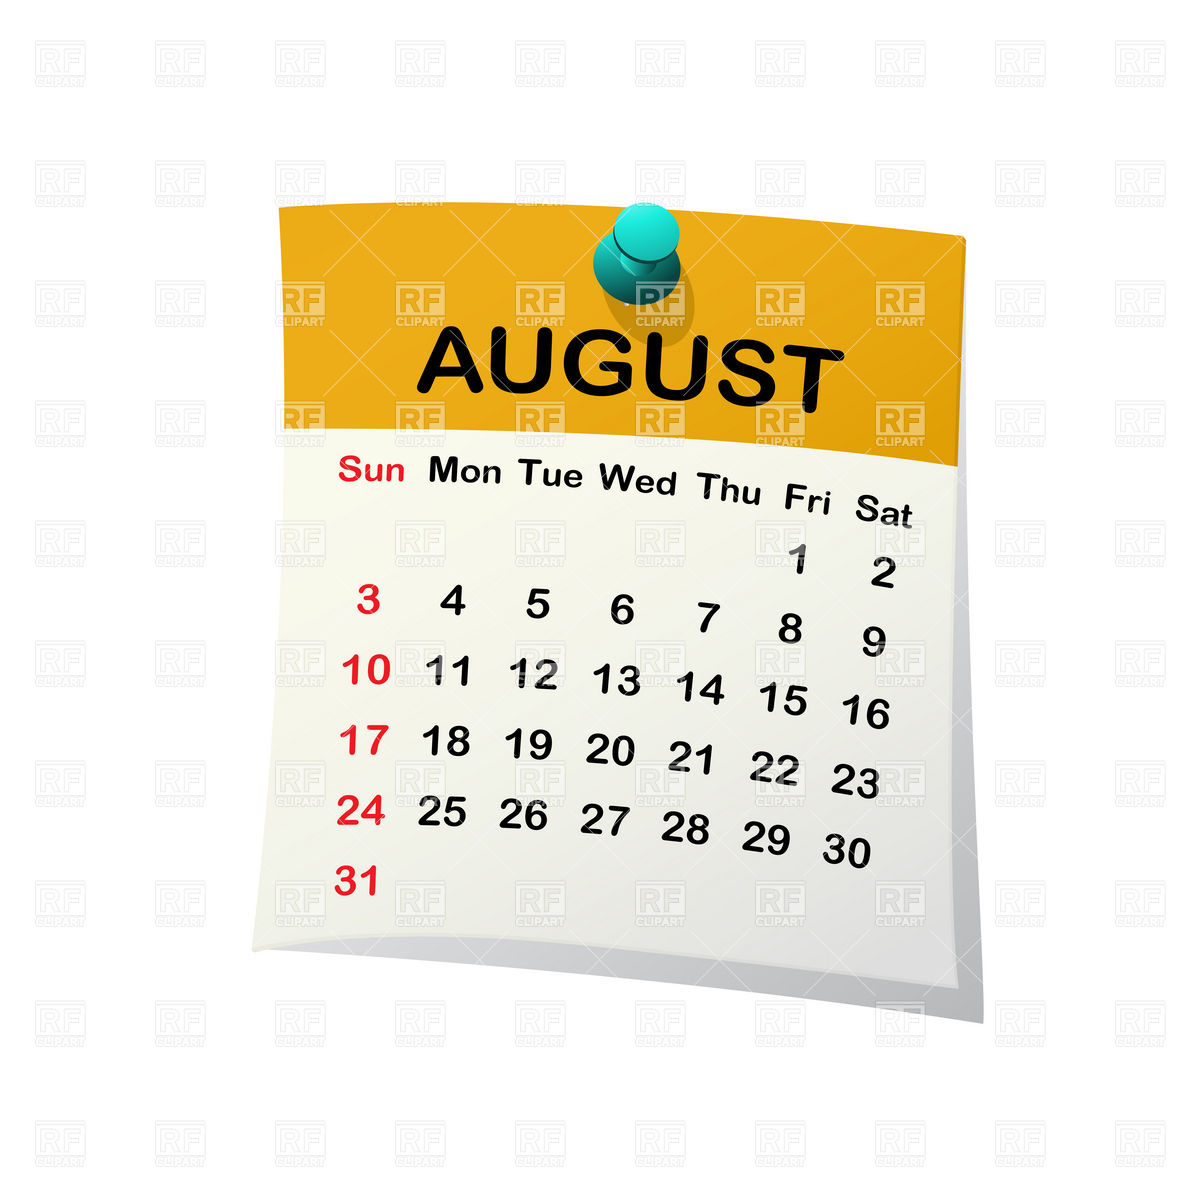 Monthly Calendar Clipart : August calendar clipart suggest